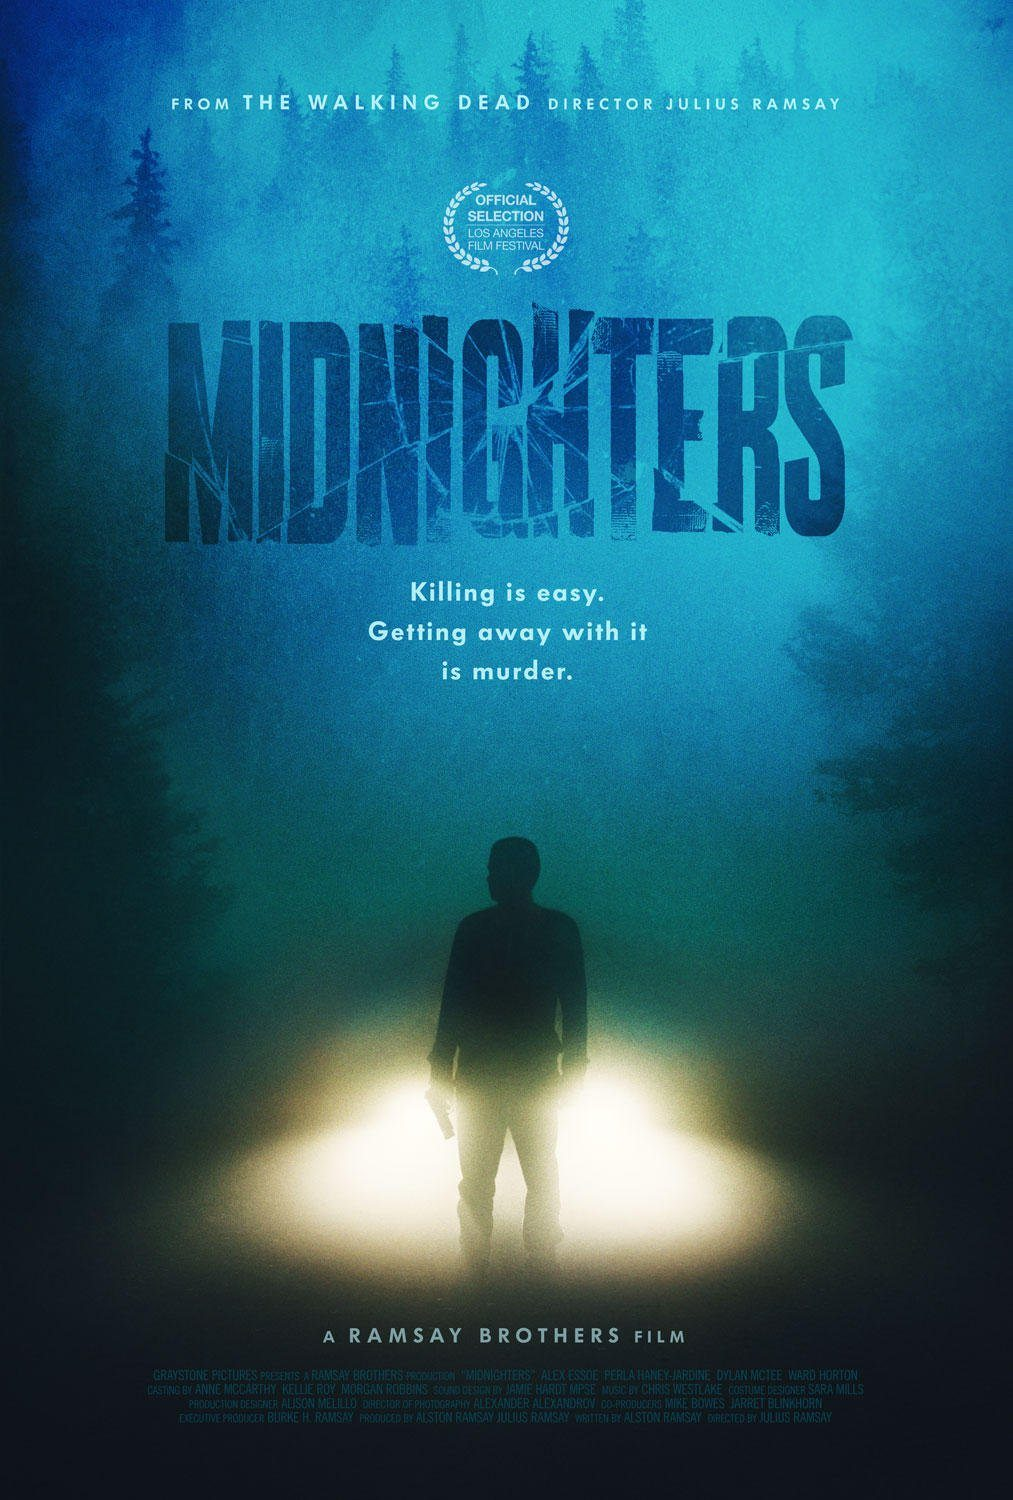 We've Got The Latest Trailer For 'Midnighters'